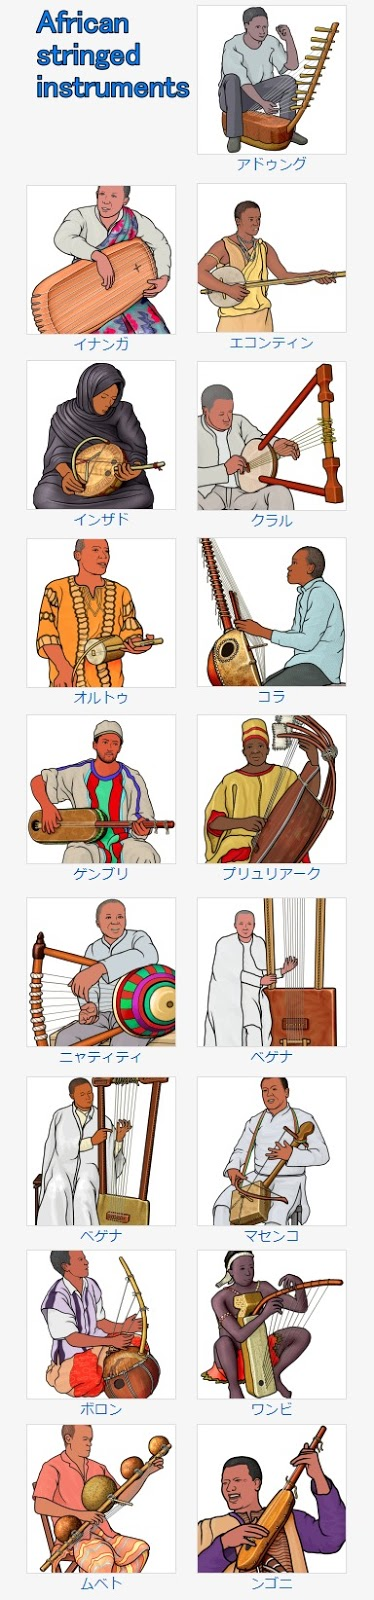 アフリカの弦楽器 African stringed Instruments